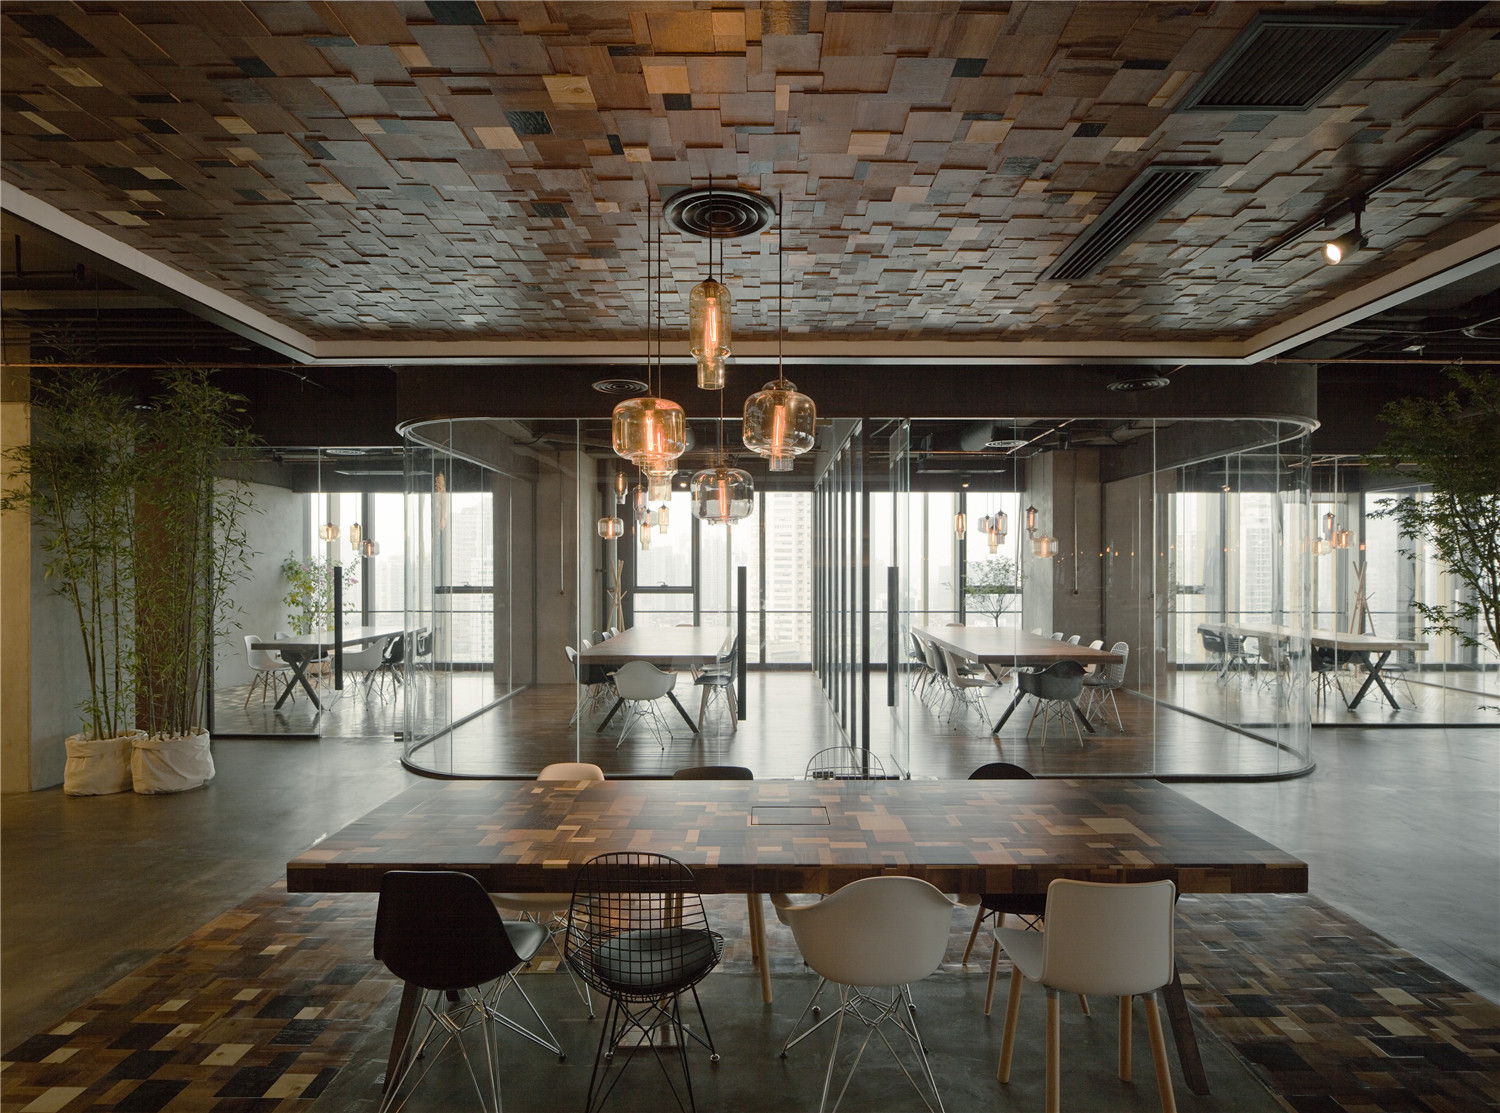 Leo office lllab archdaily - Best interior design websites 2017 ...